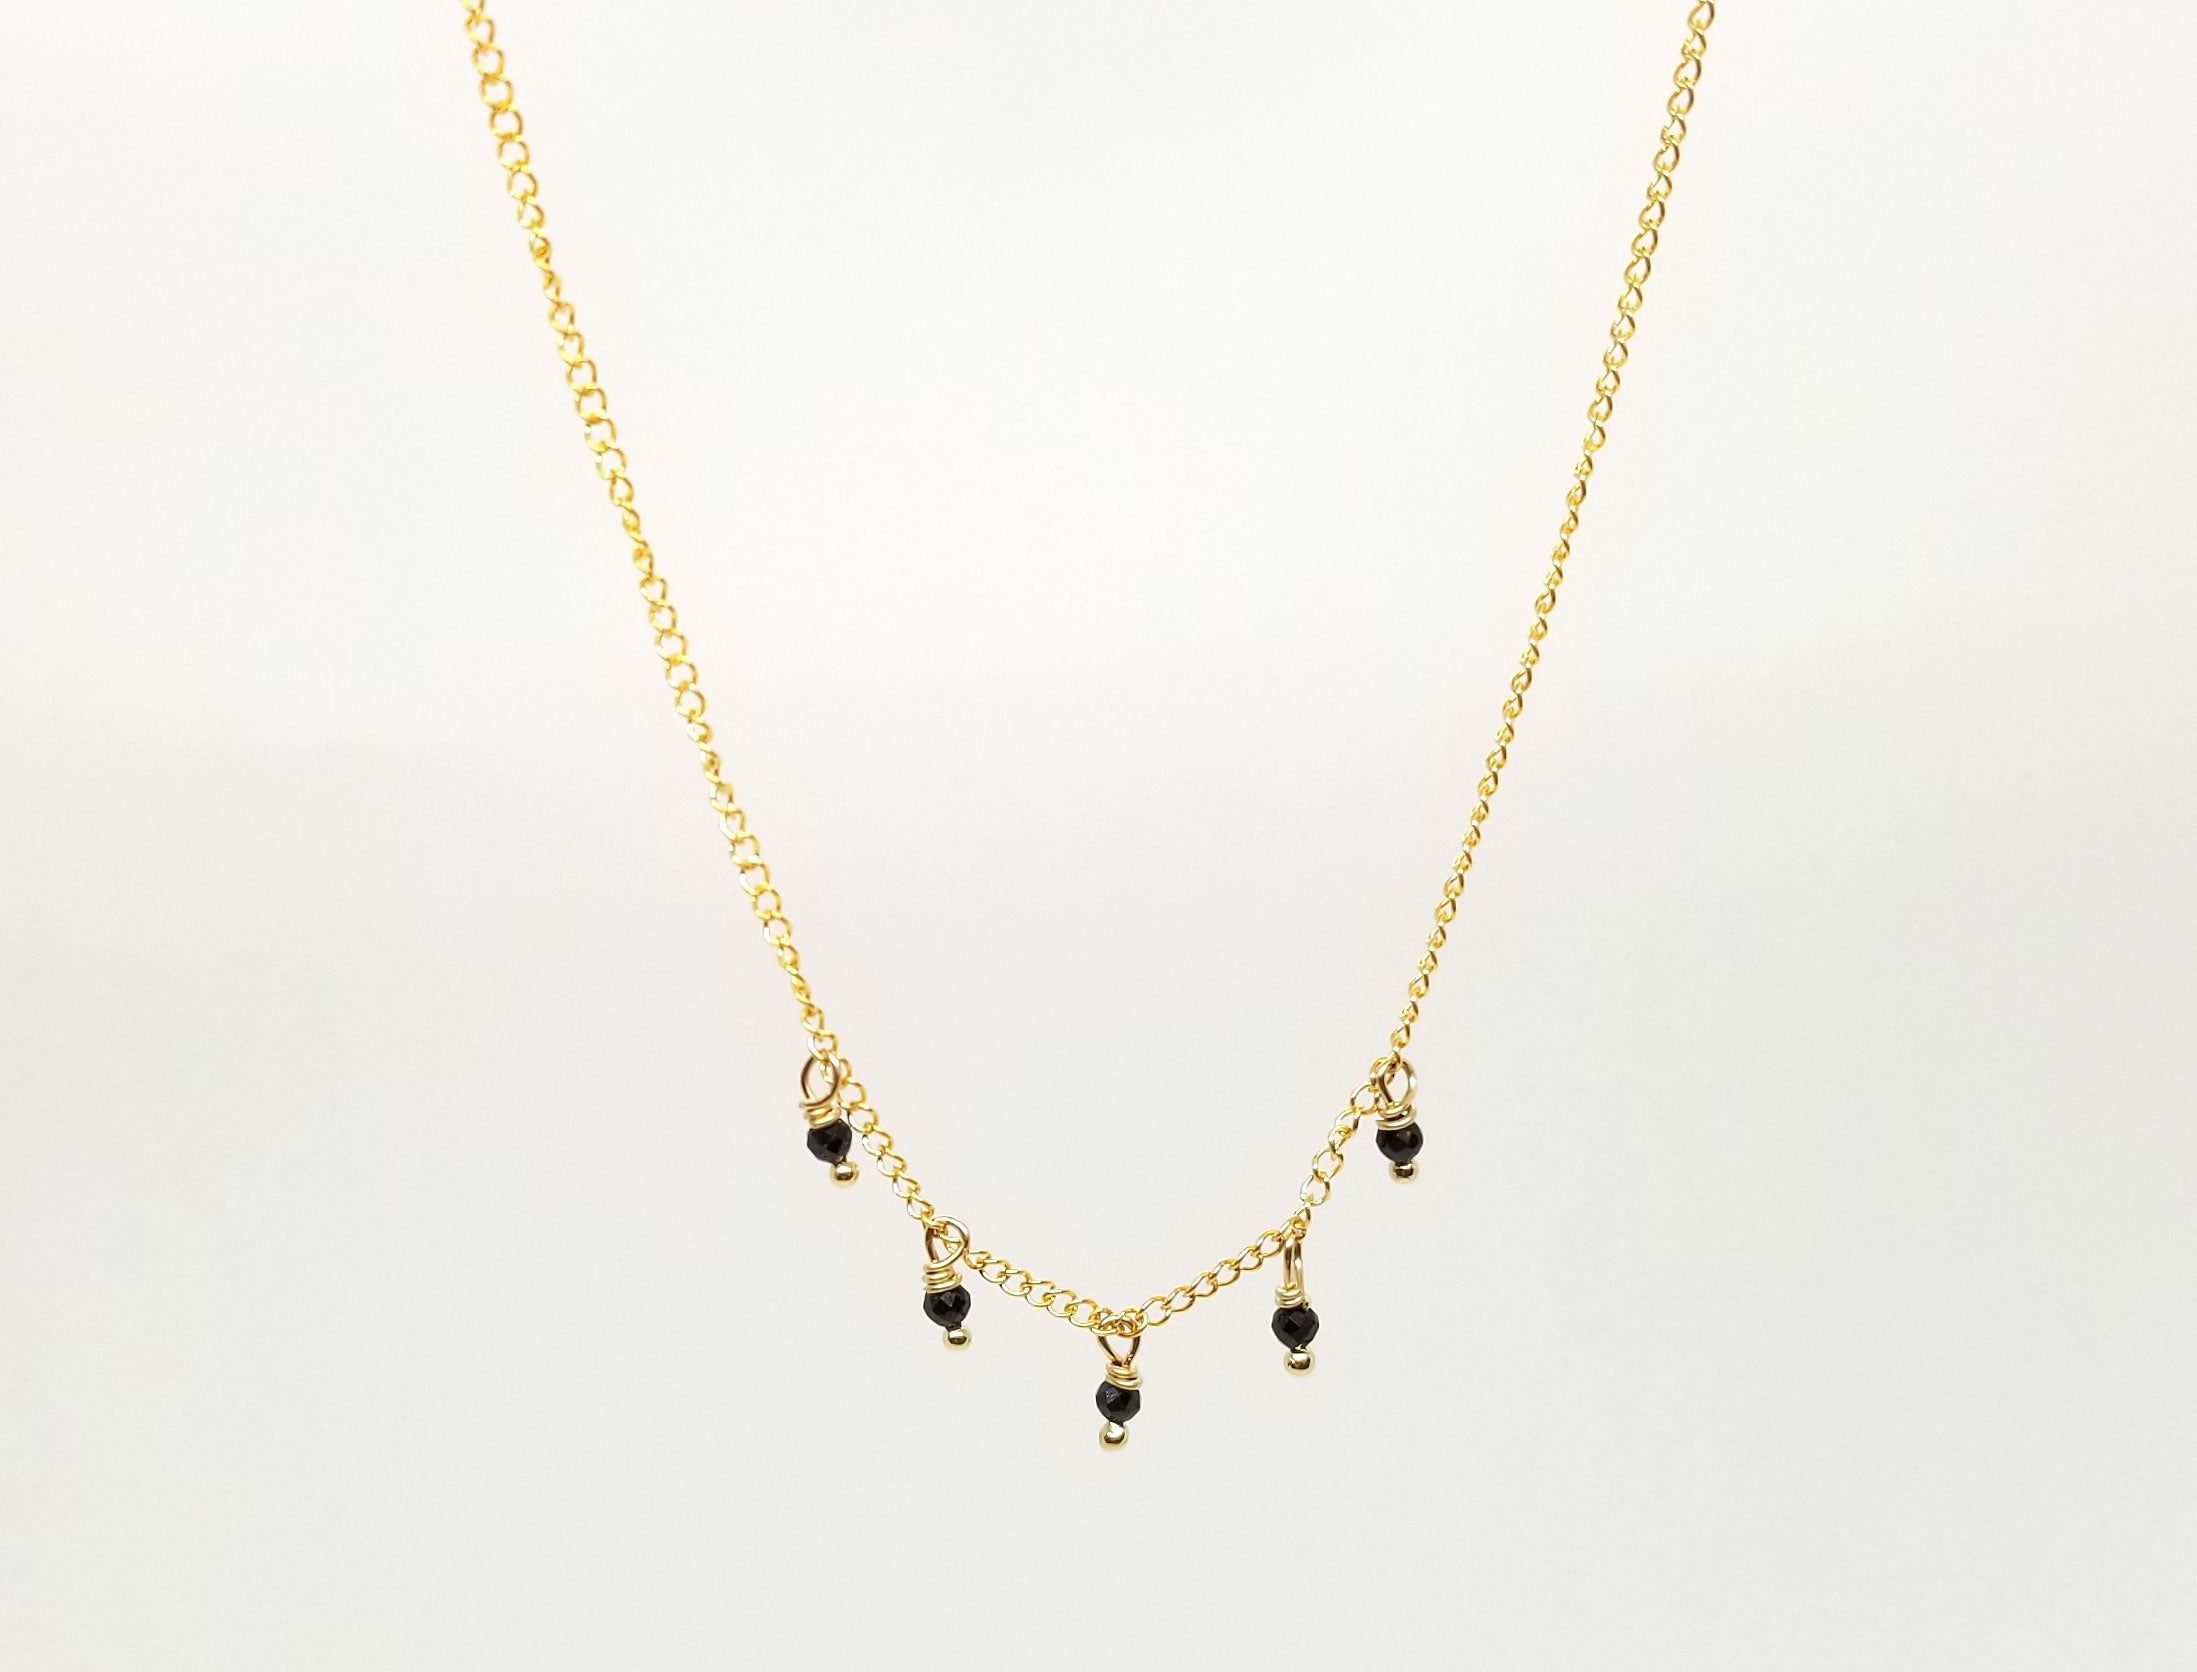 The Krista Gold Necklace